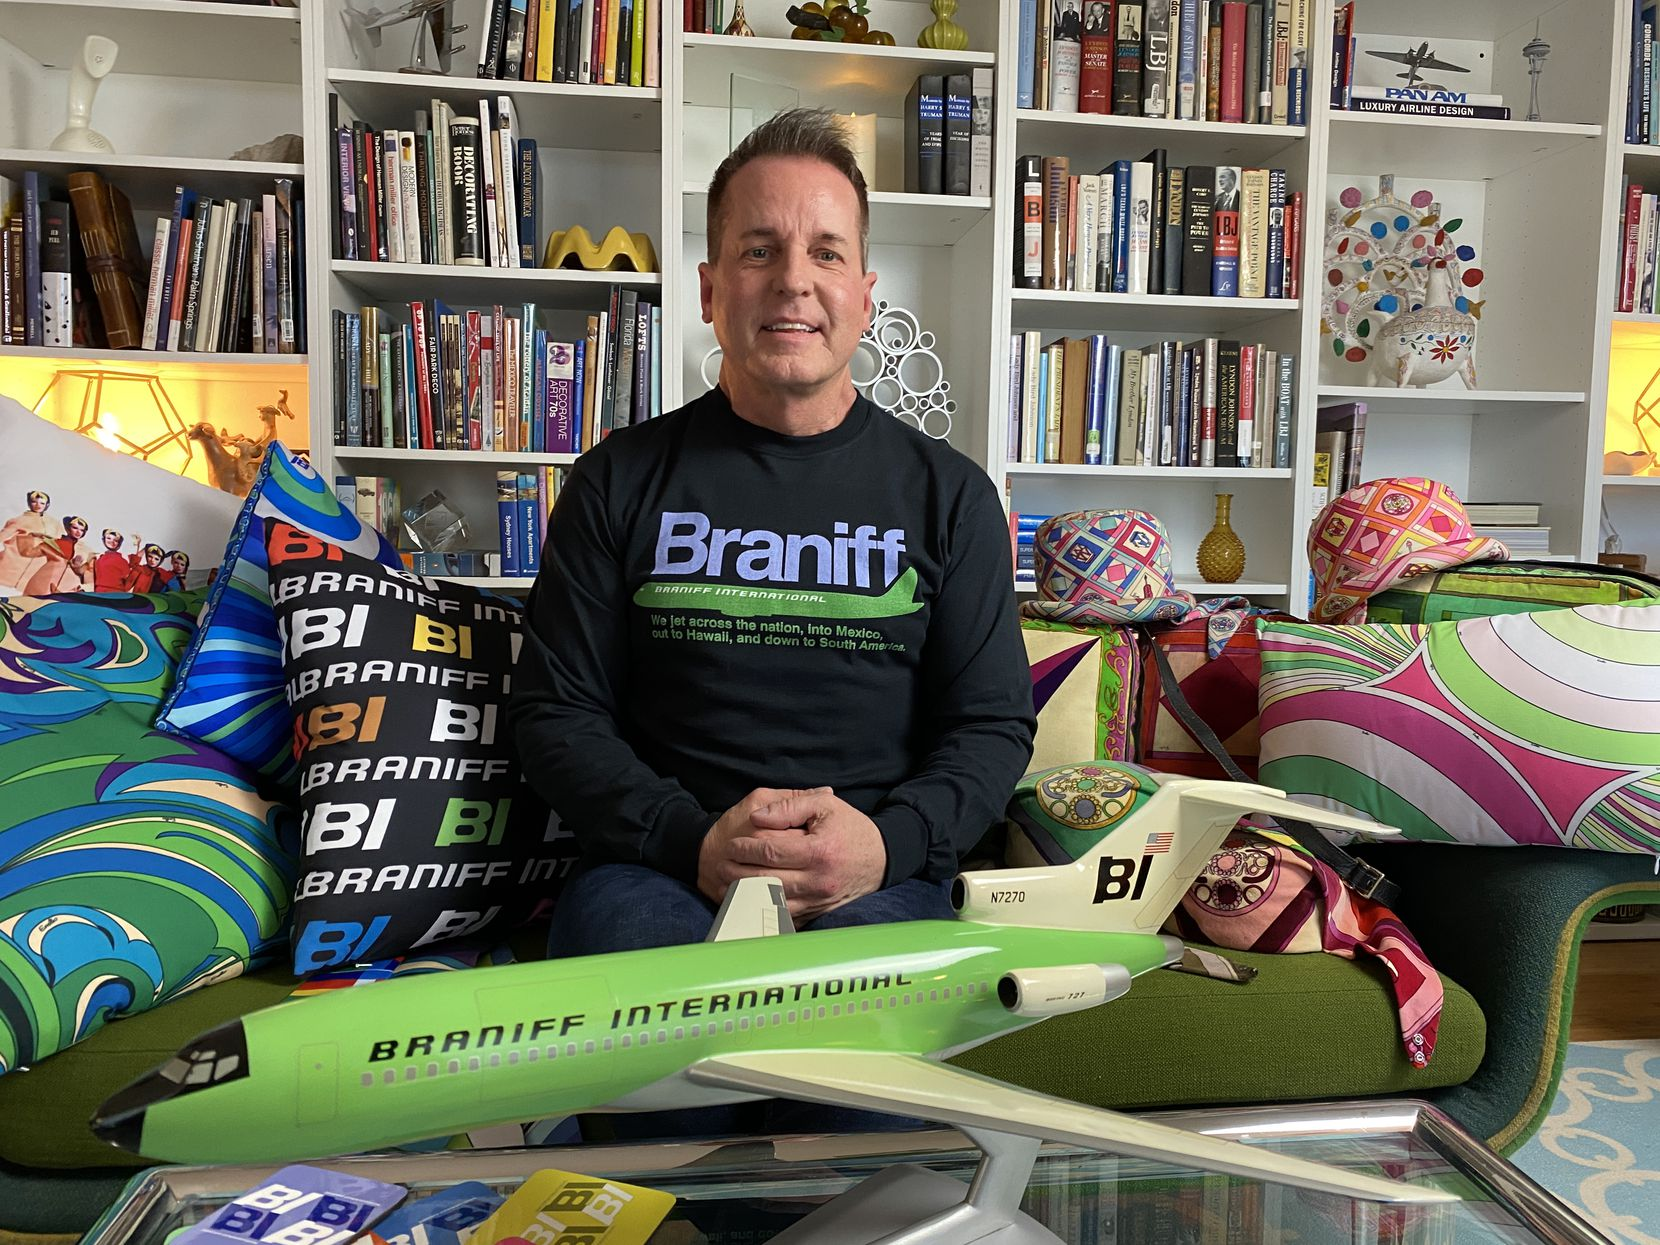 Ben Cass of Dallas leads the company that acquired trademarks and marketing material for the defunct Braniff International Airways, which went out of business in 1982. The company's goal is to keep the Braniff name alive, he said.